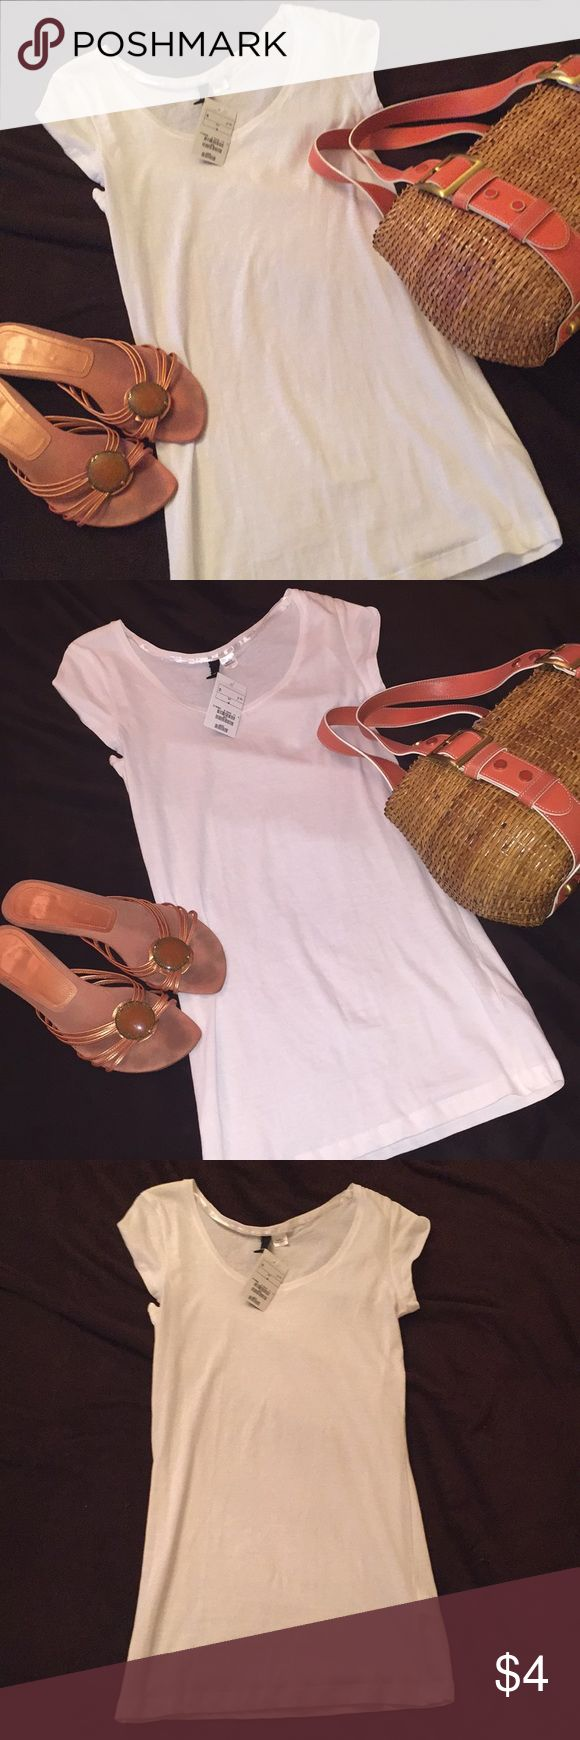 🆕 NWT White T-Shirt from H&M 👚 Brand new white t-shirt from H&M. Great for layering. 🌻 H&M Tops Tees - Short Sleeve